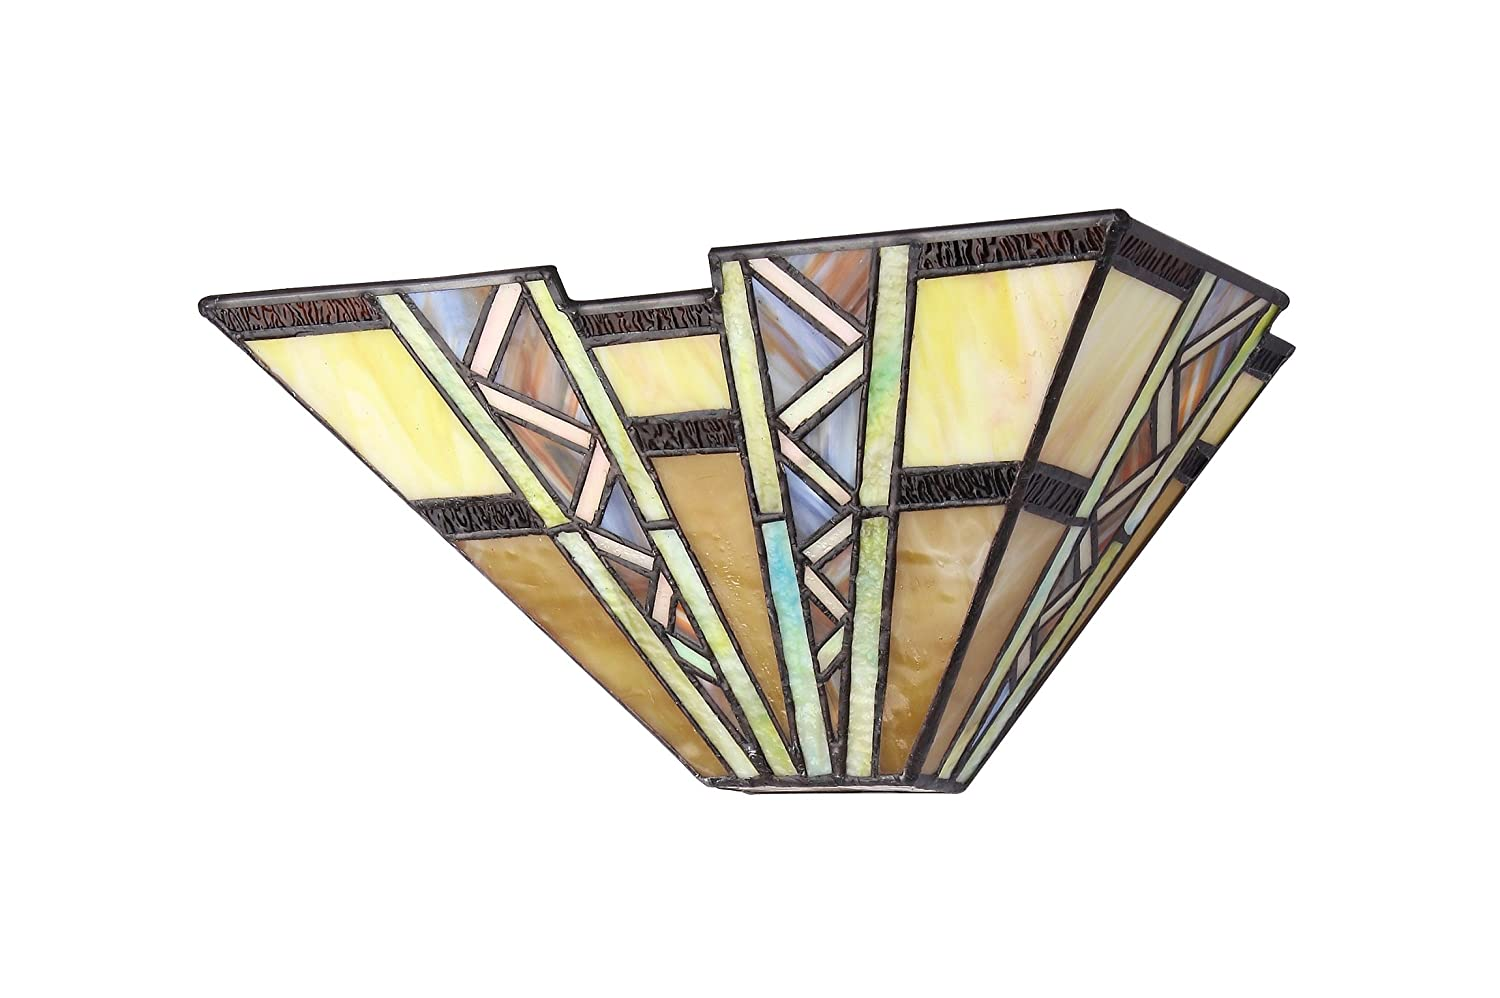 Chloe lighting ch33226mi12 ws1 tiffany style mission 1 light wall chloe lighting ch33226mi12 ws1 tiffany style mission 1 light wall sconce 12 inch wide multi colored tiffany style wall sconce amazon amipublicfo Image collections